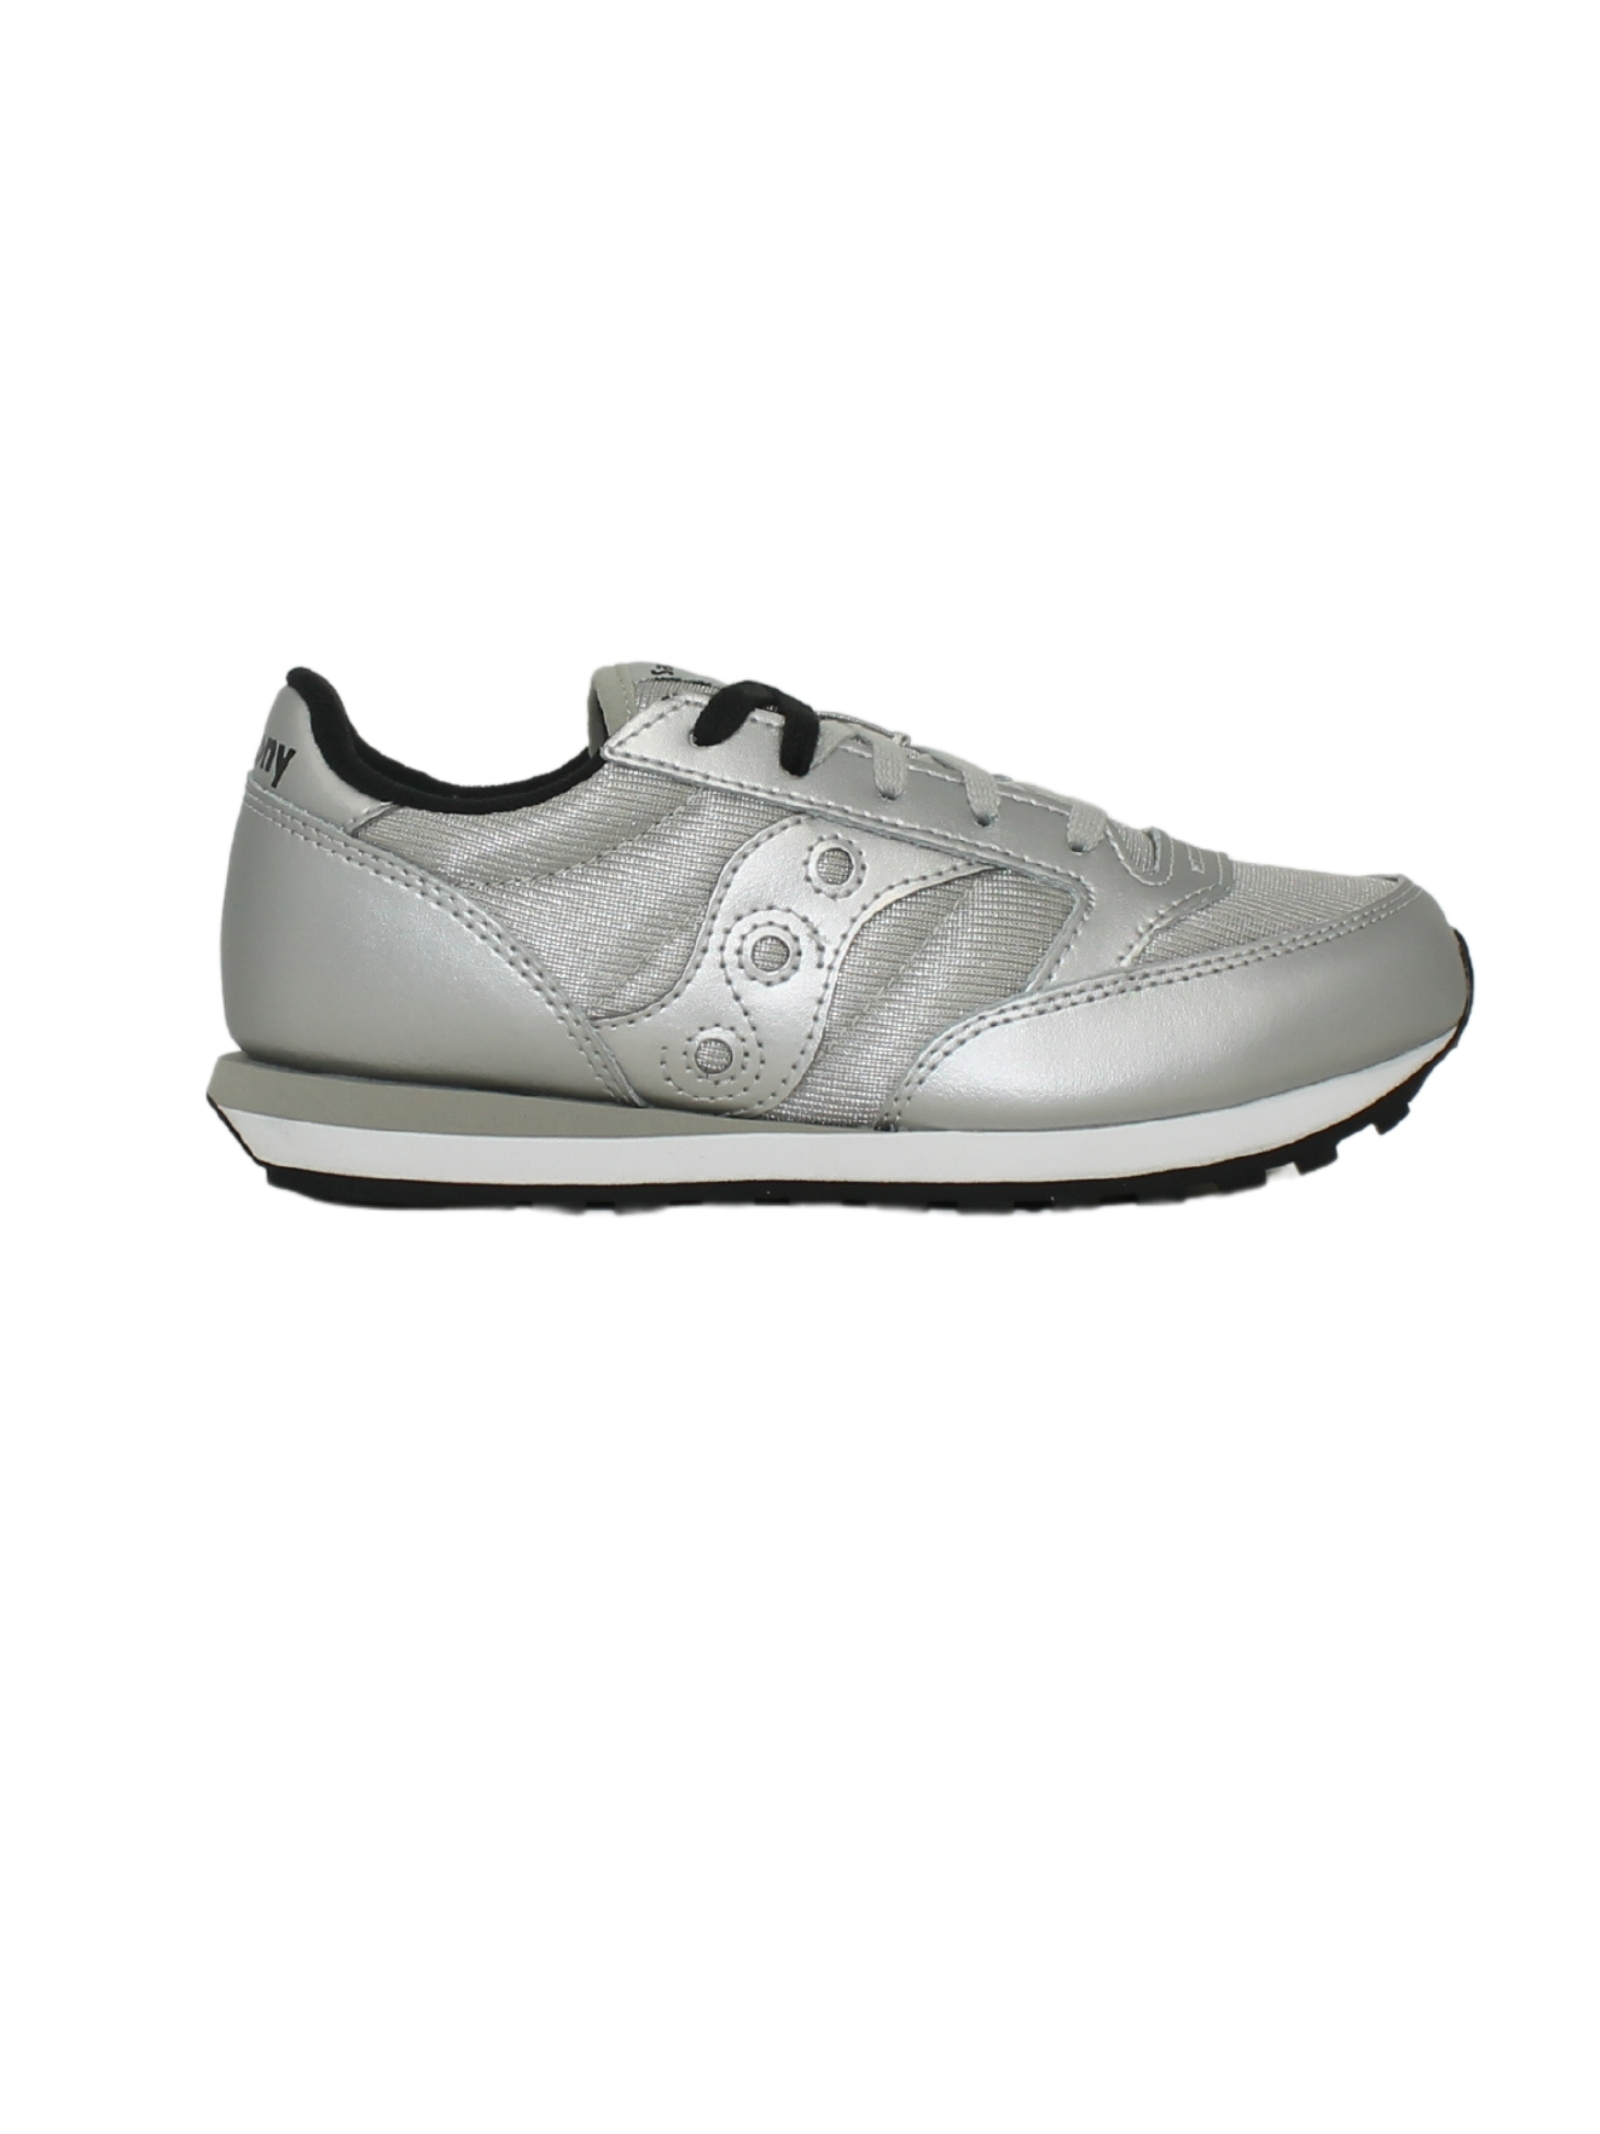 Jazz Silver Sneakers for Girls SAUCONY KIDS | Sneakers | SK165136SILVER